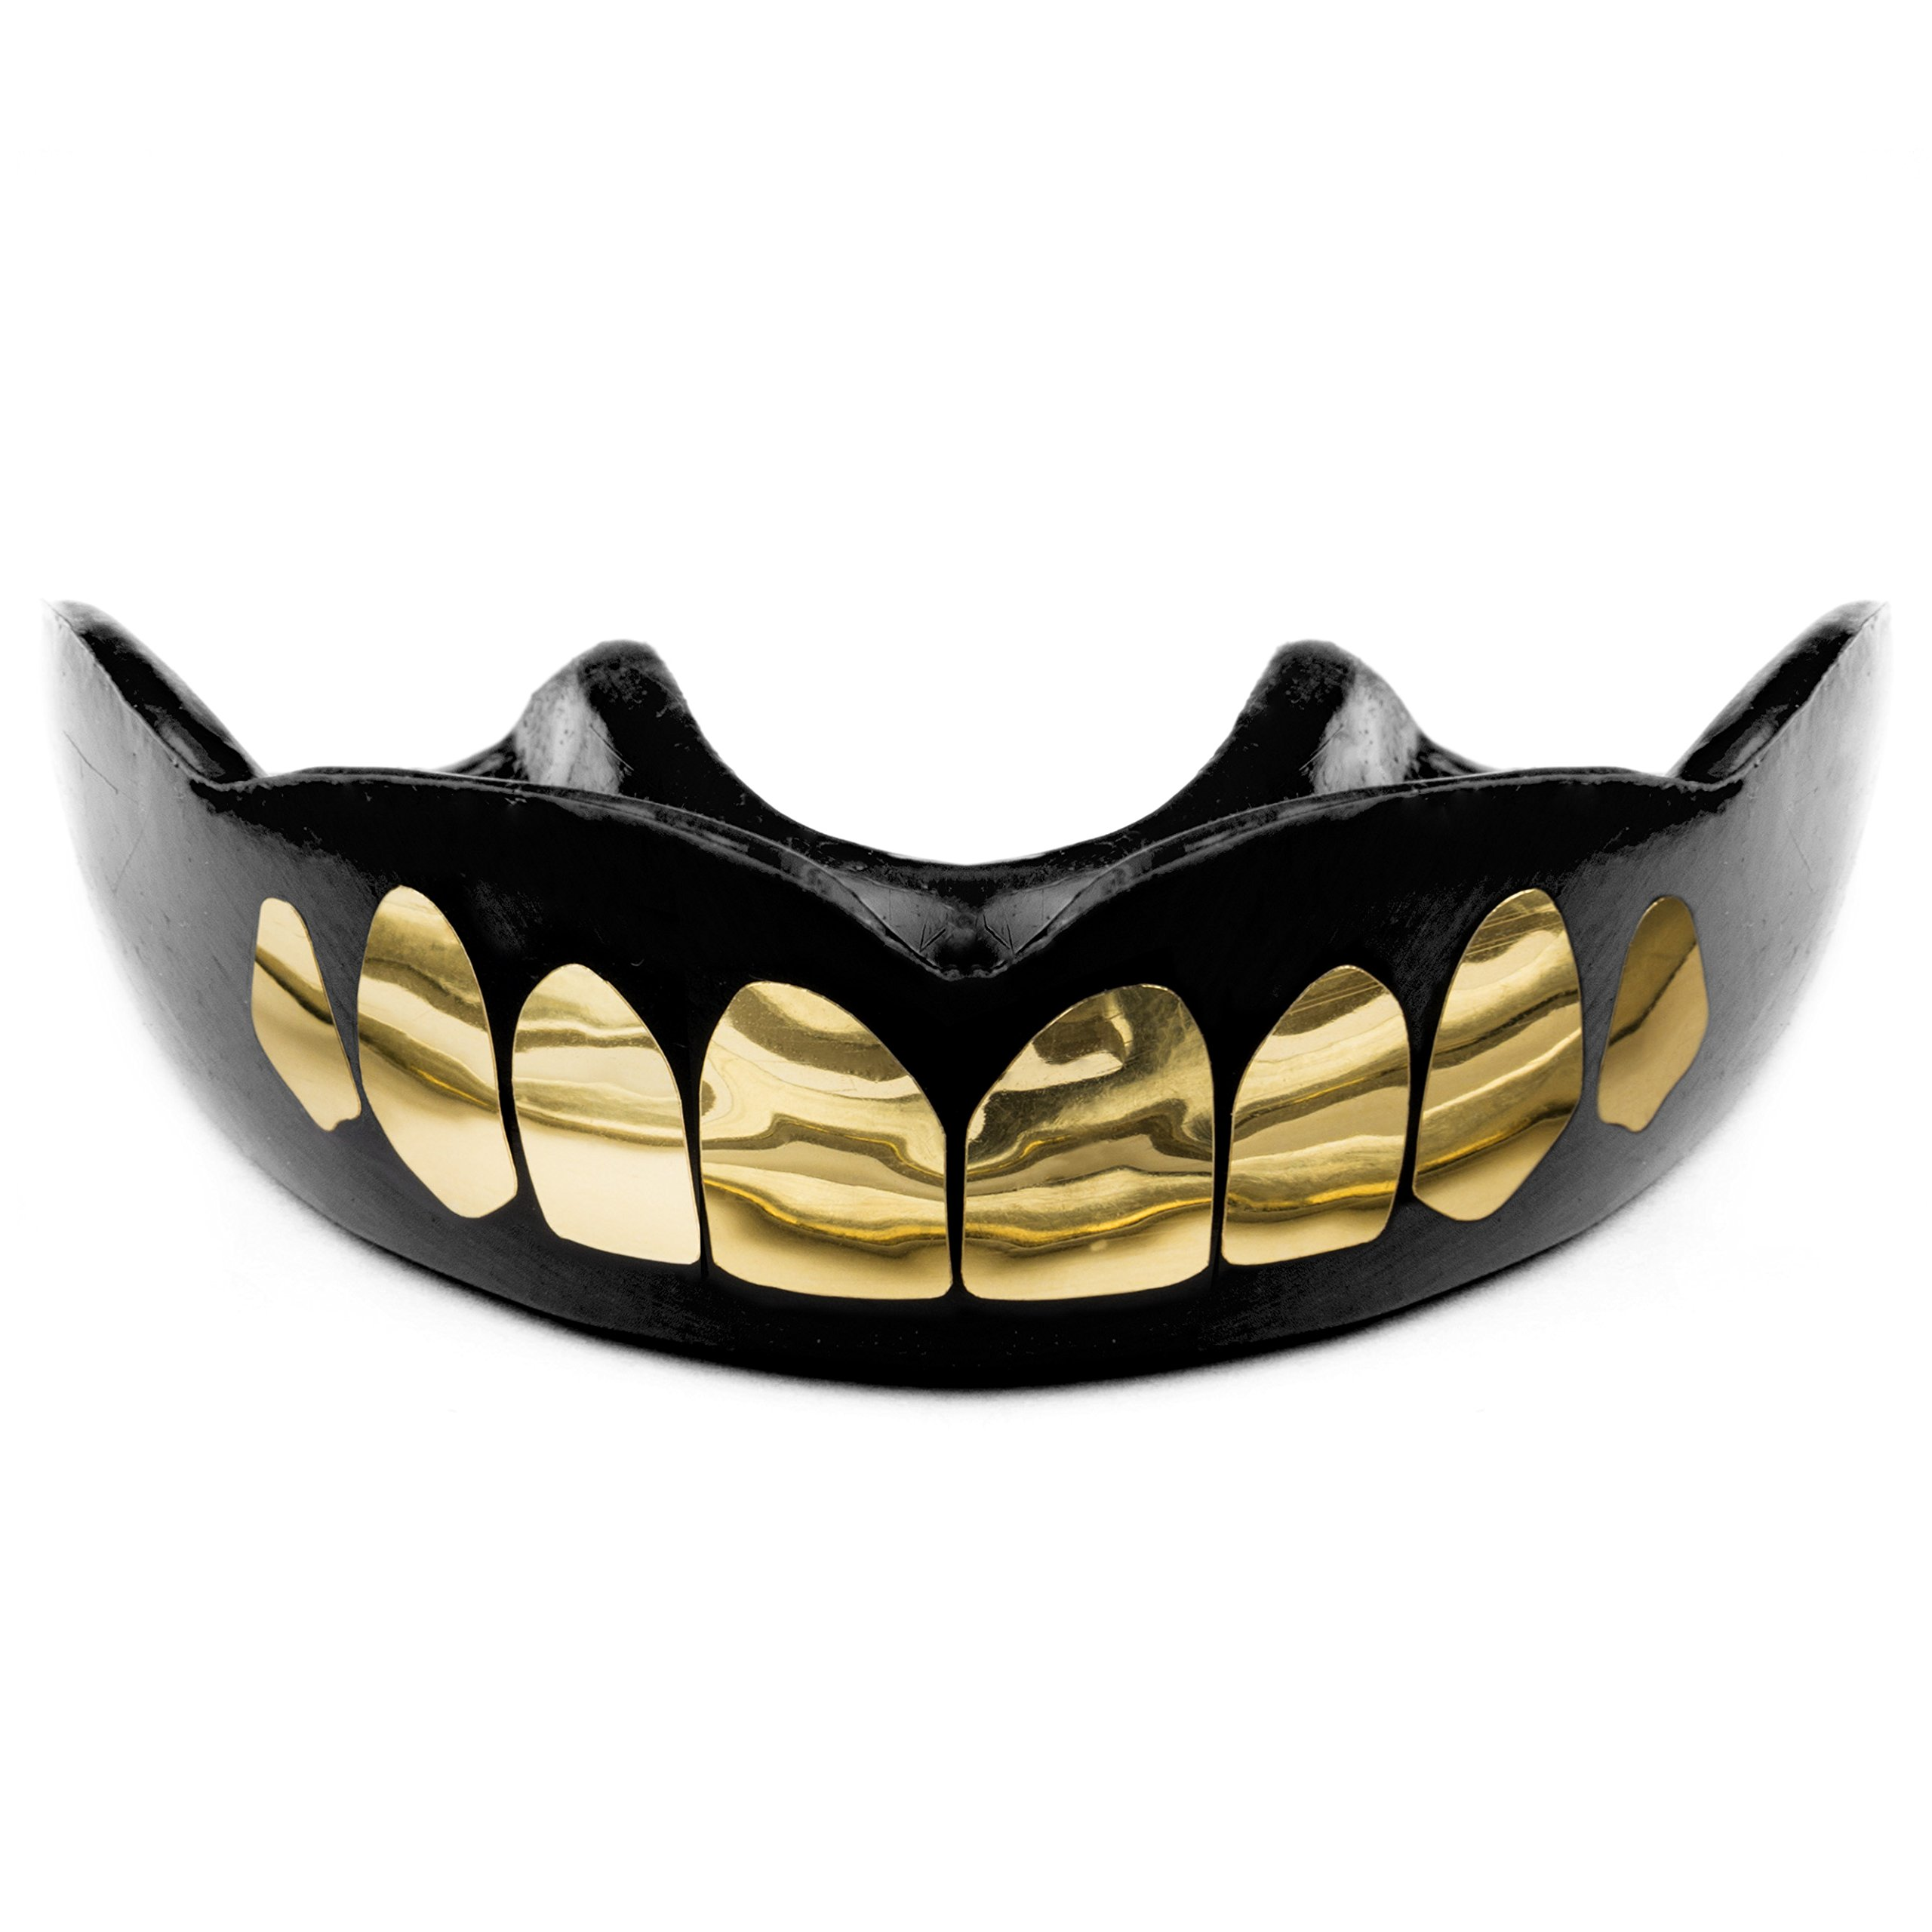 Warrior Mouthguards - Teeth Print Moldable Mouth Guard with Case for Youth and Adults (Gold Teeth, Adult)